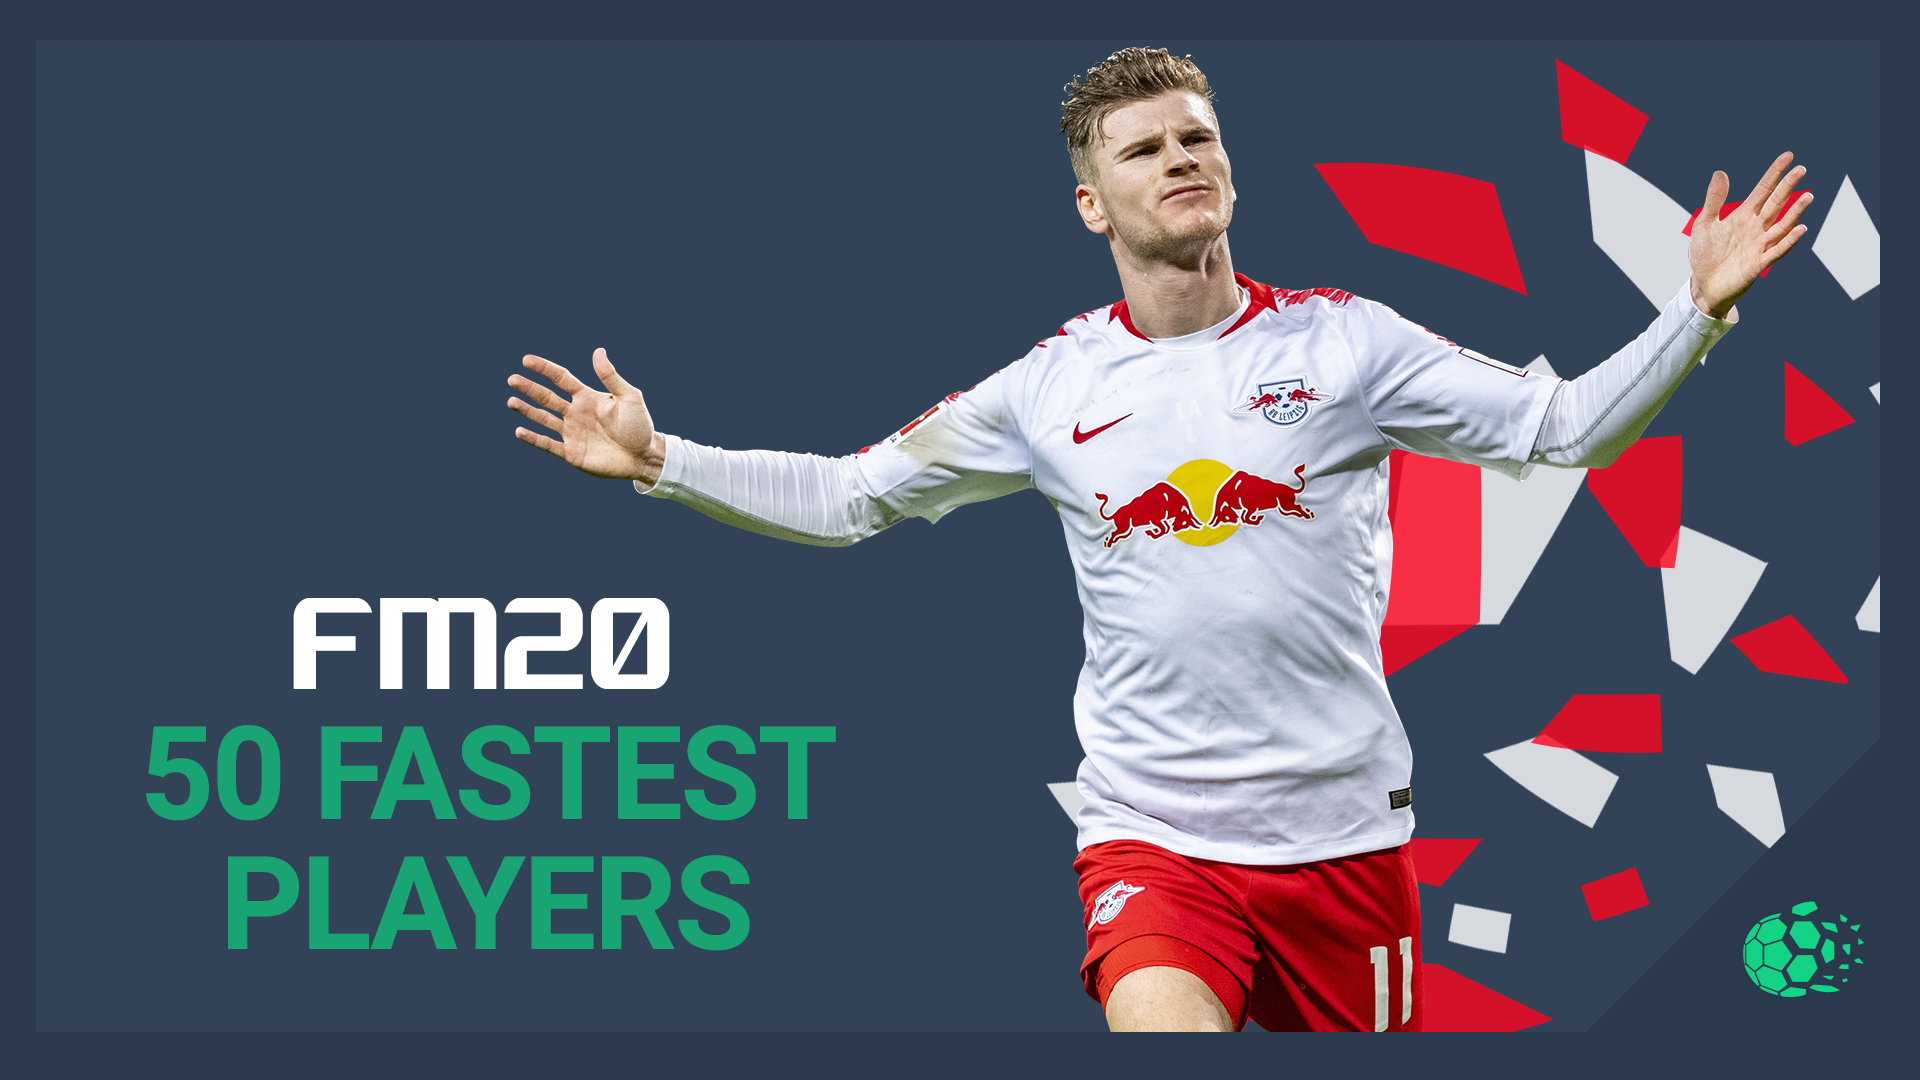 """FM20 50 Fastest Players"" feature image"